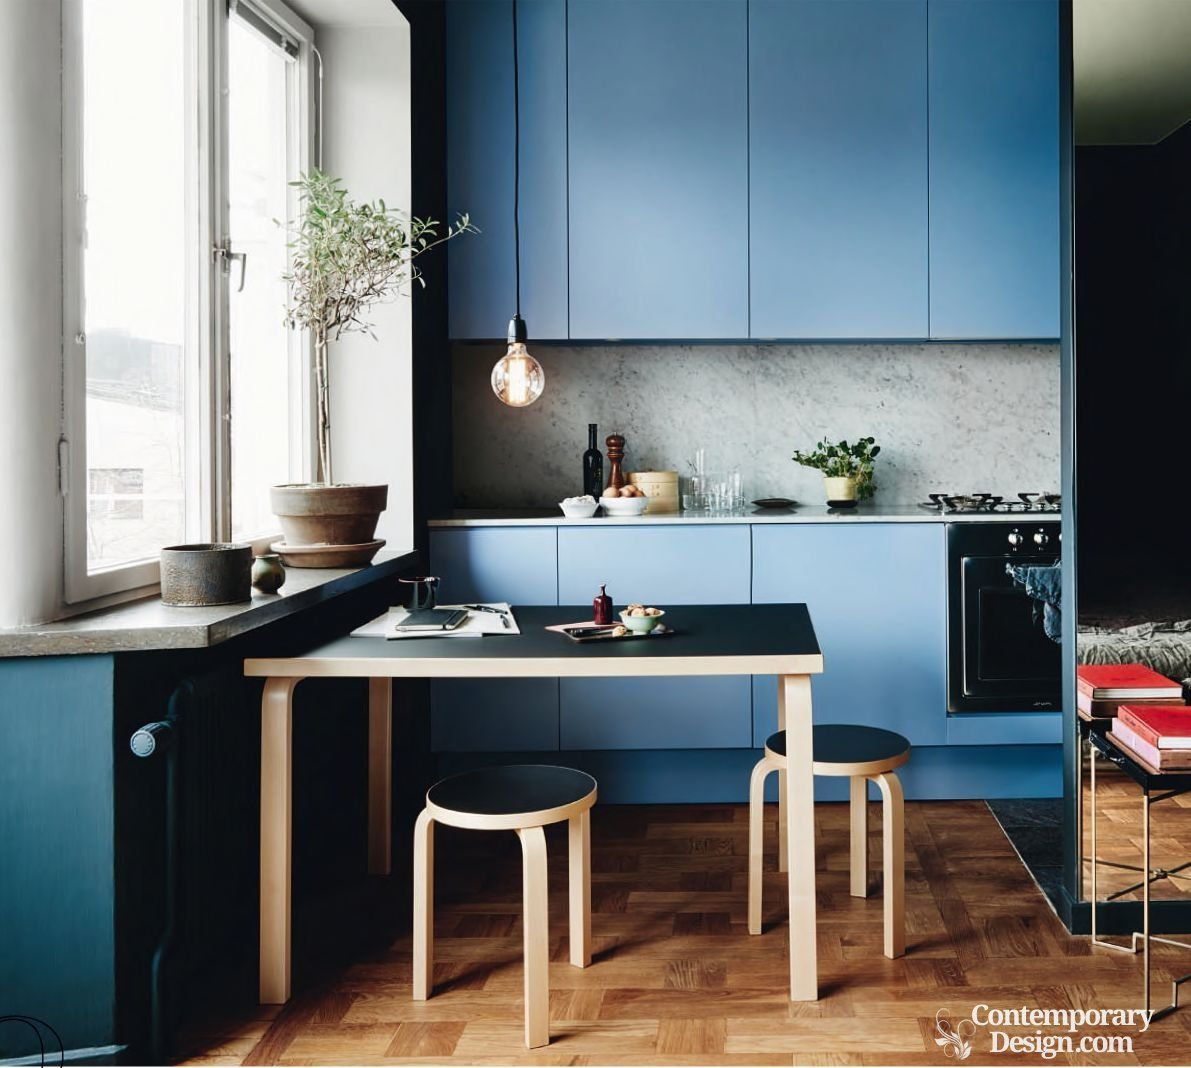 Kitchen design for small spaces | Interior stylist, Square meter and ...